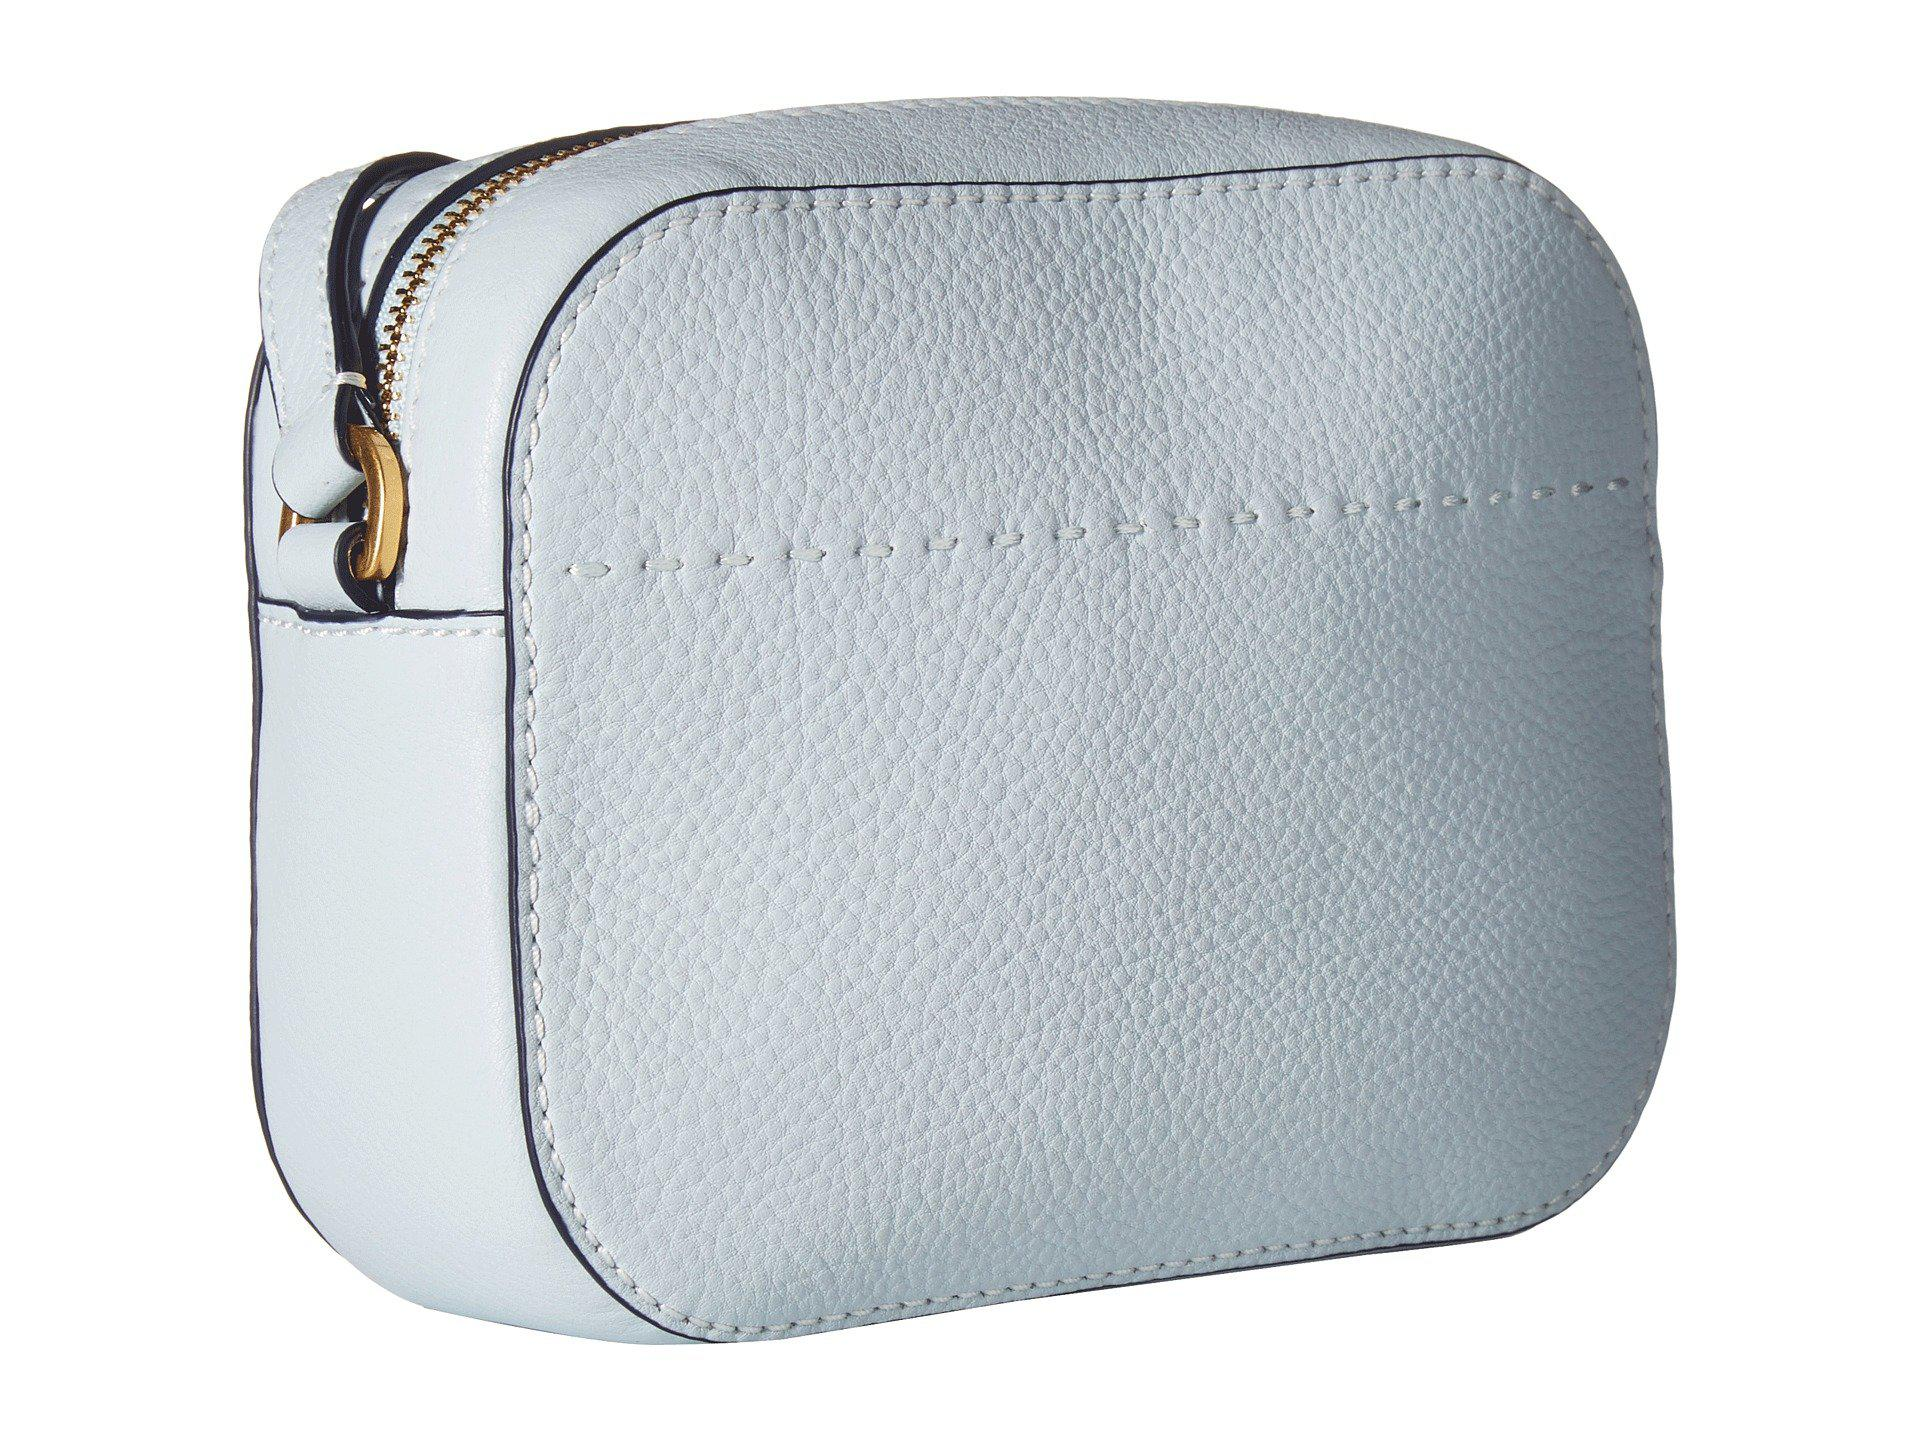 d6a13c70164 Gallery. Previously sold at  Zappos · Women s Camera Bags ...